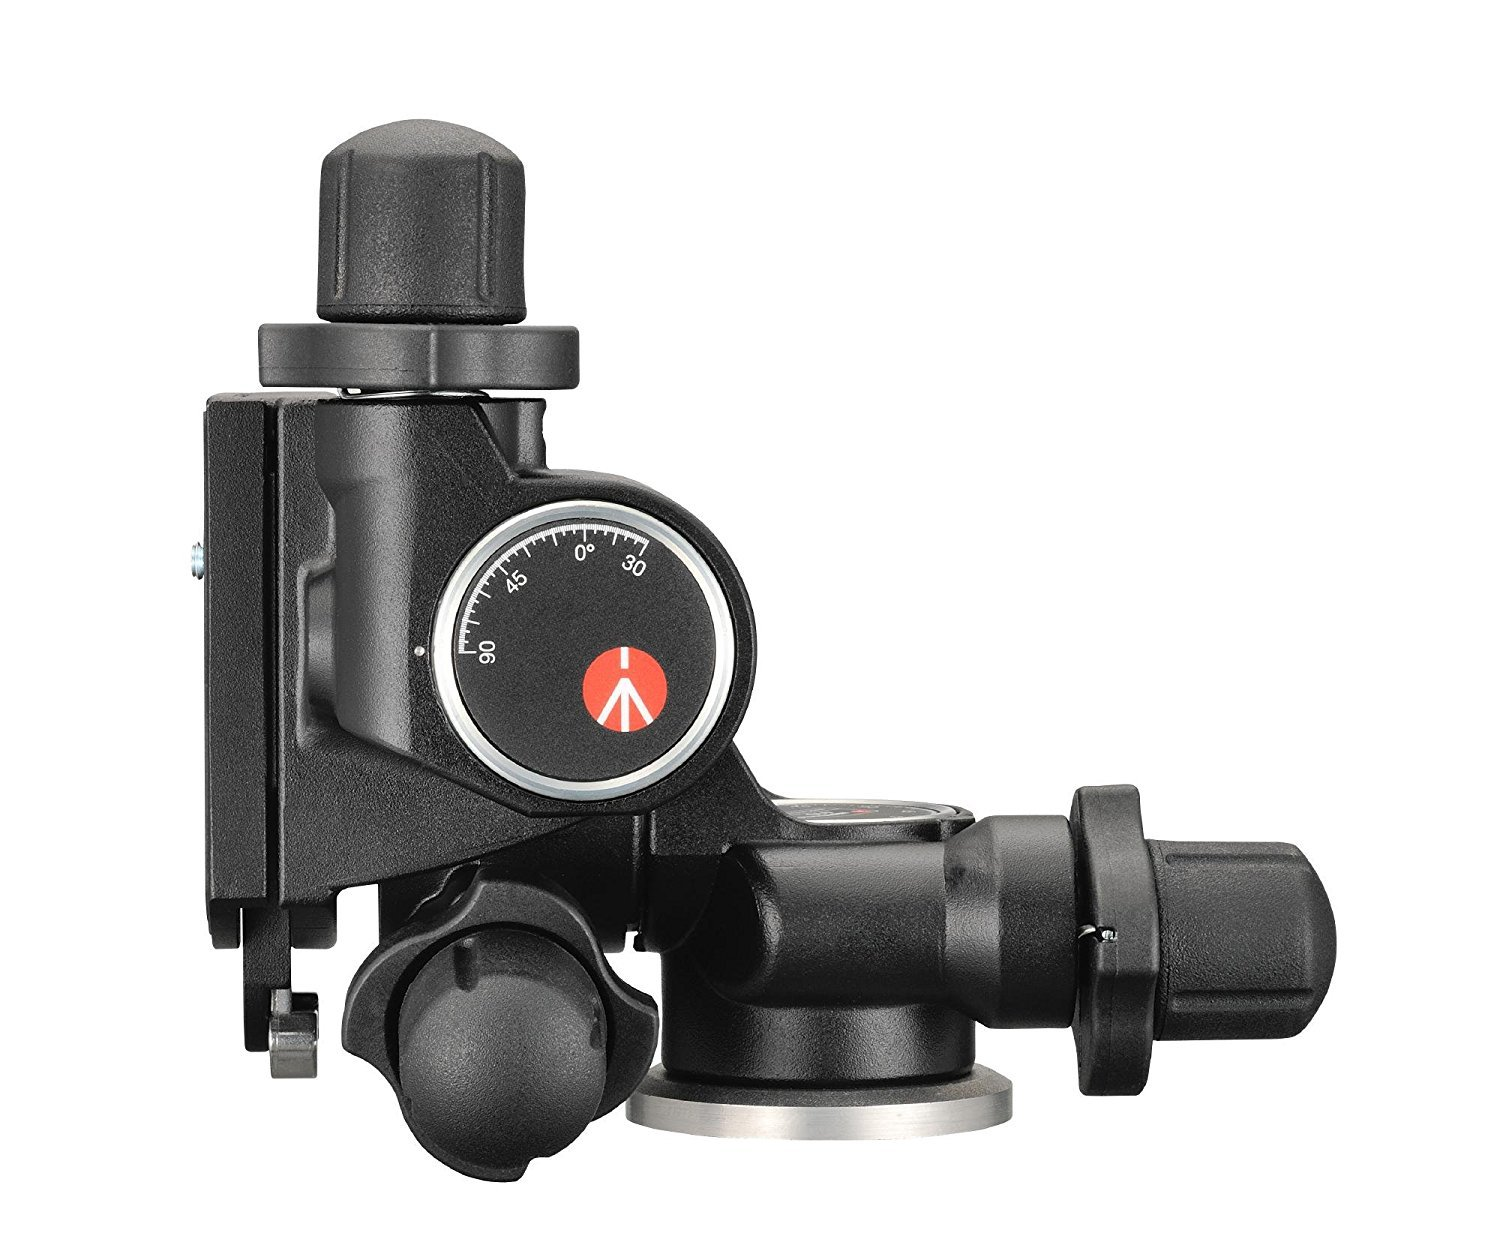 Manfrotto 410 Junior Geared Tripod Head with Quick Release and a Bonus Ivation Quick Release Plate by Manfrotto (Image #5)